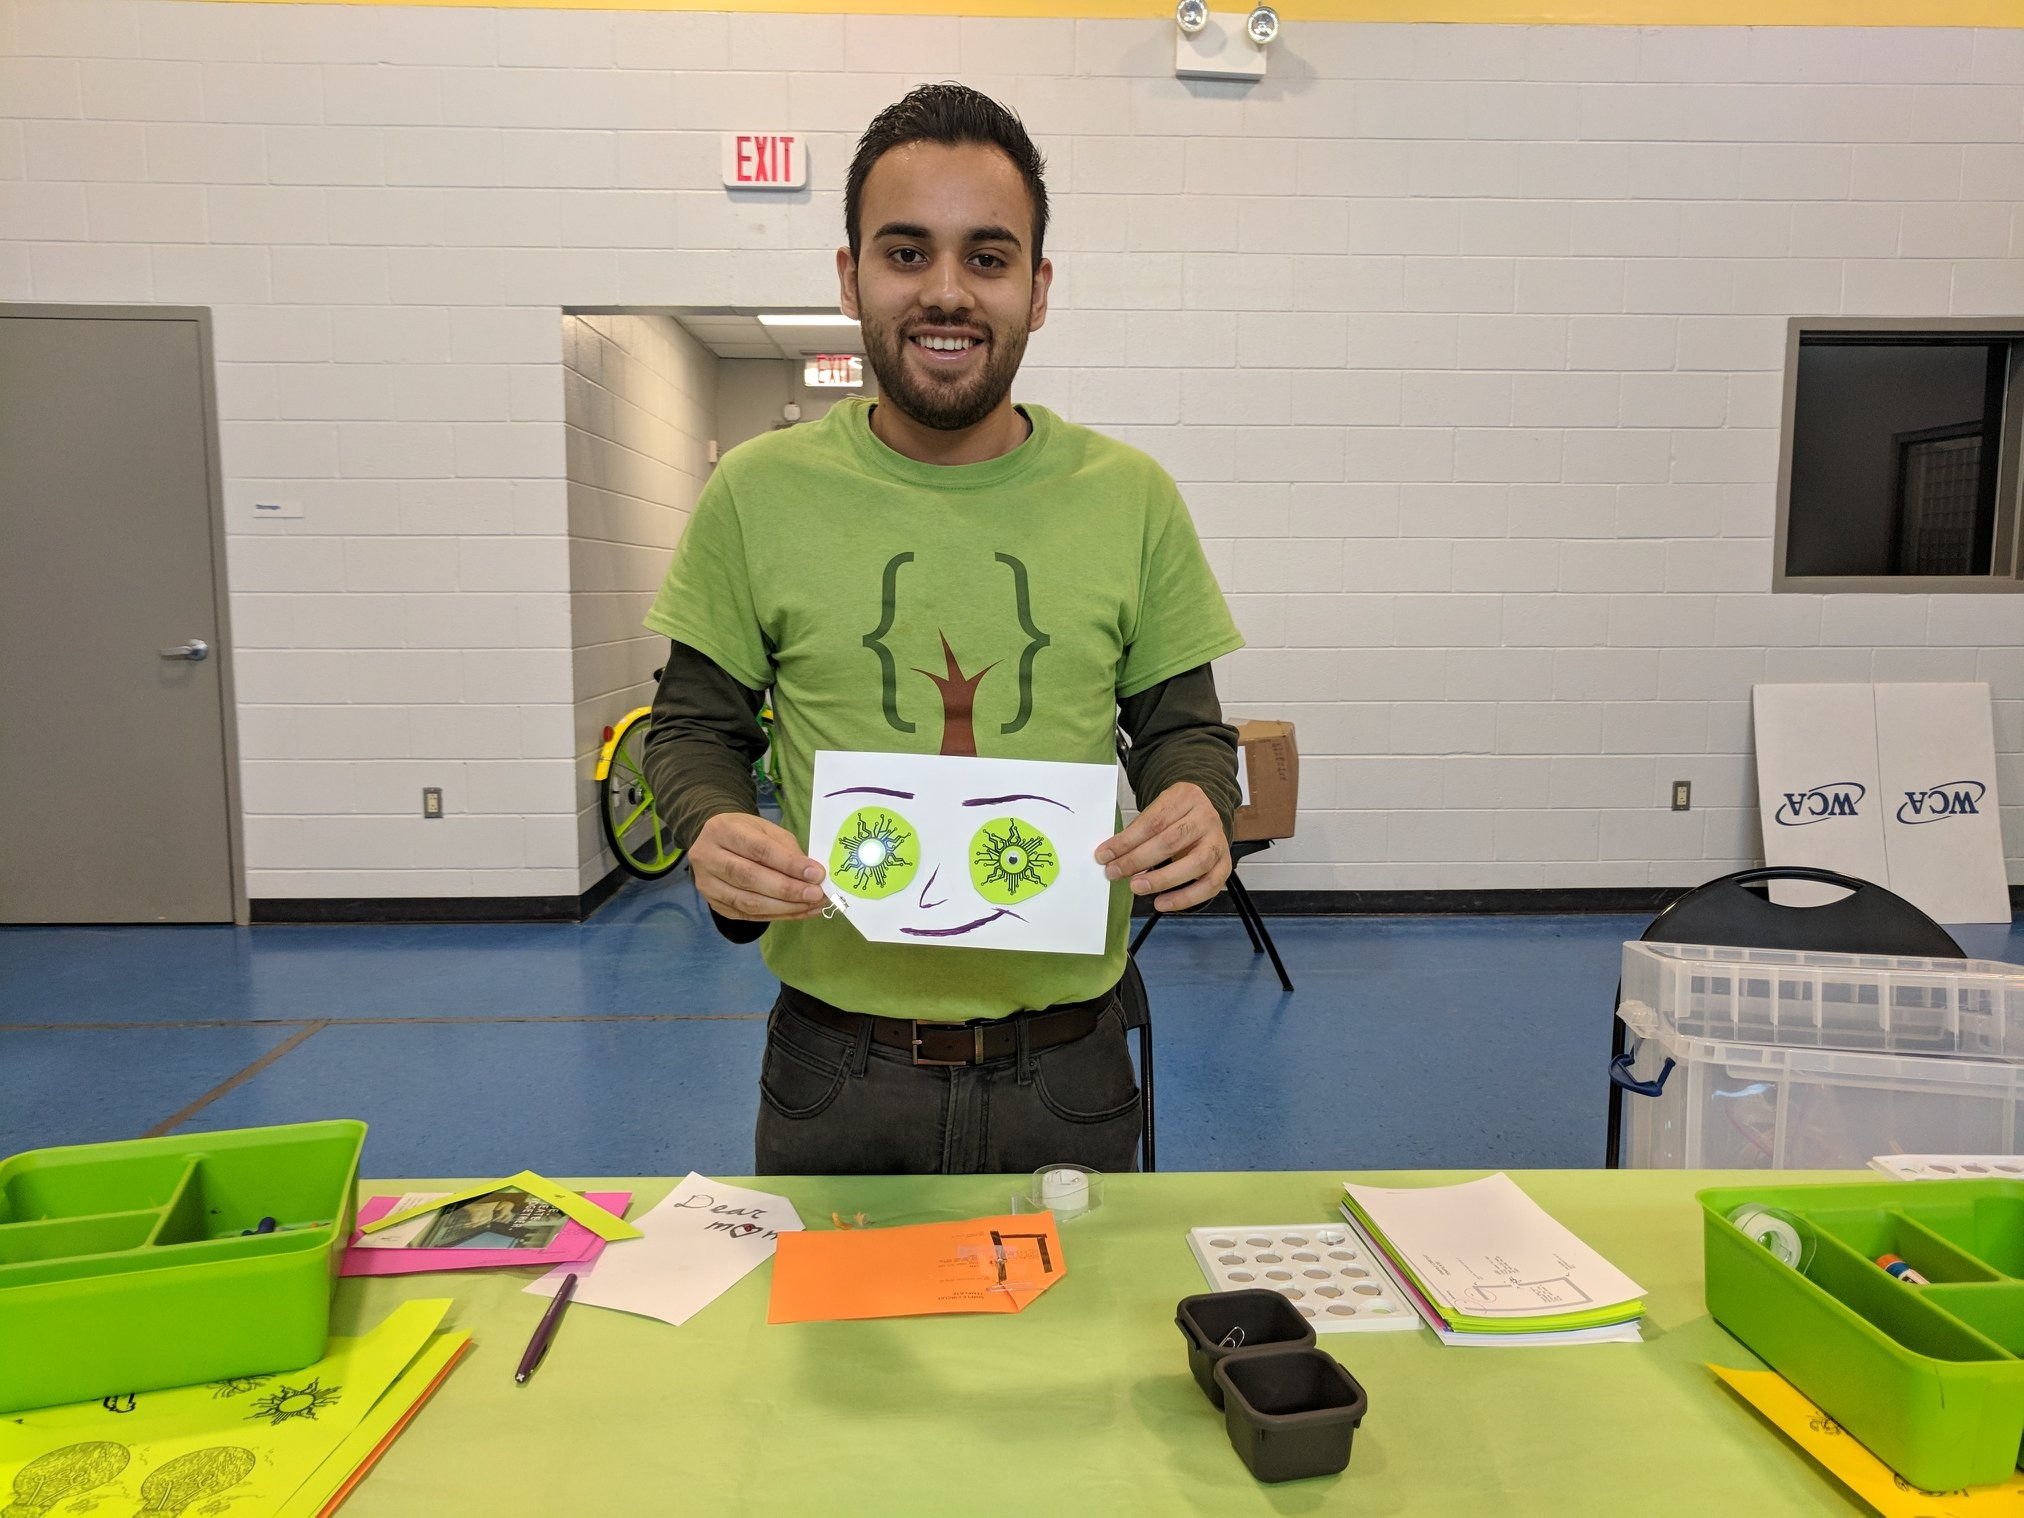 """Bryan, a volunteer and software developer at Code Park, holding his creation of a light up paper circuit card based on the idea of """"What Lights You Up?"""" card at Finnigan Park Community Center. Courtesy of Wanjun Zhang, July 7th, 2018."""